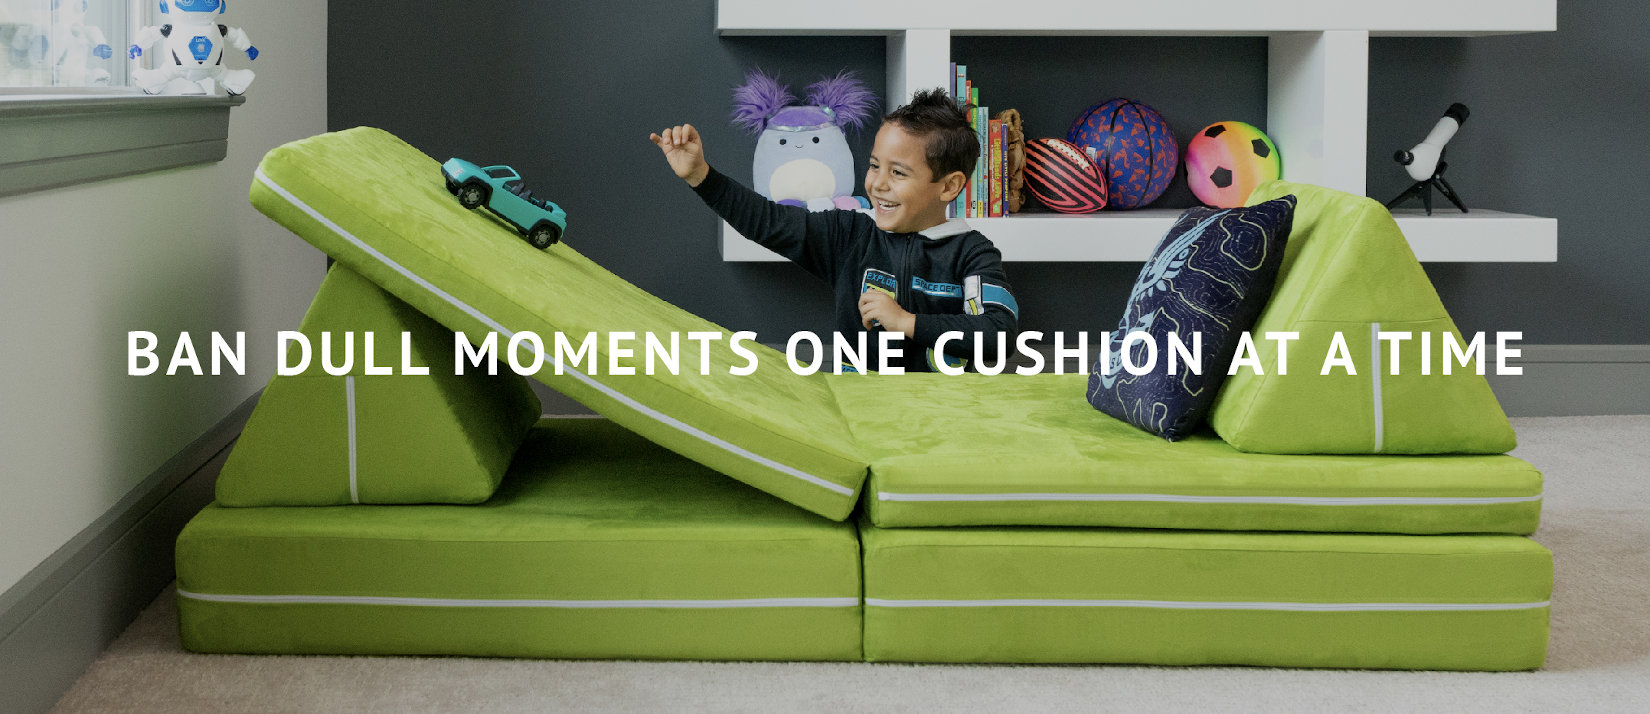 Ban Dull Moments One Cushion at a Time | Young child playing with the Zipline Playscape